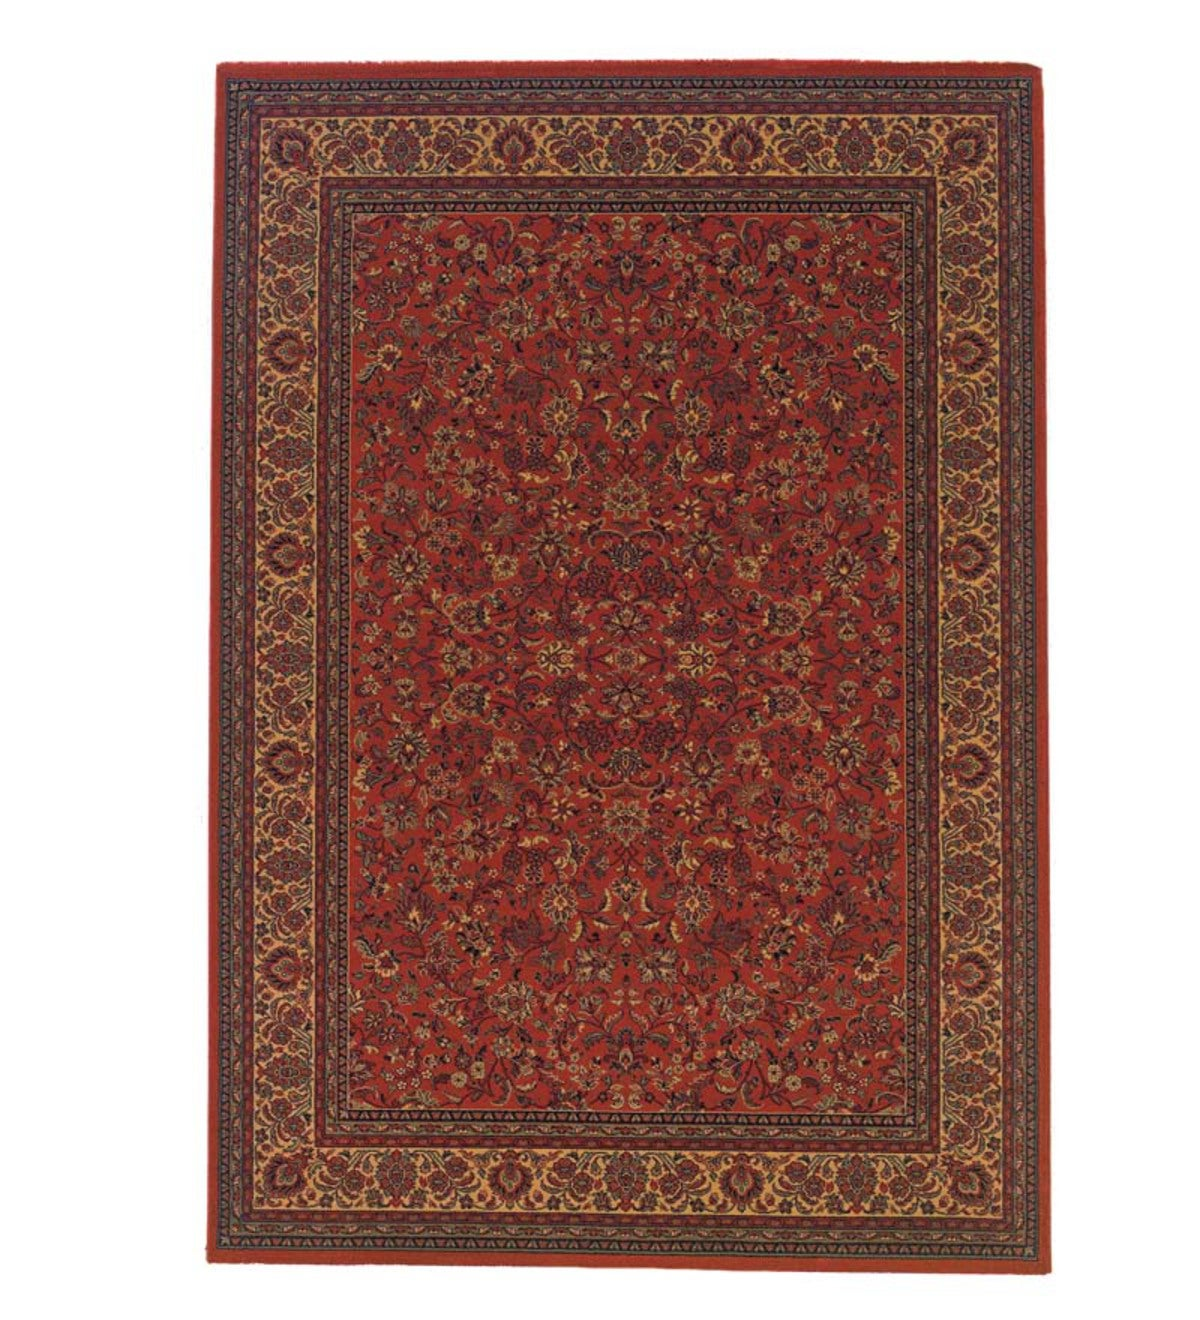 "5'3""x 7'6""High-Performance Polypropylene Everest Rug - Red"